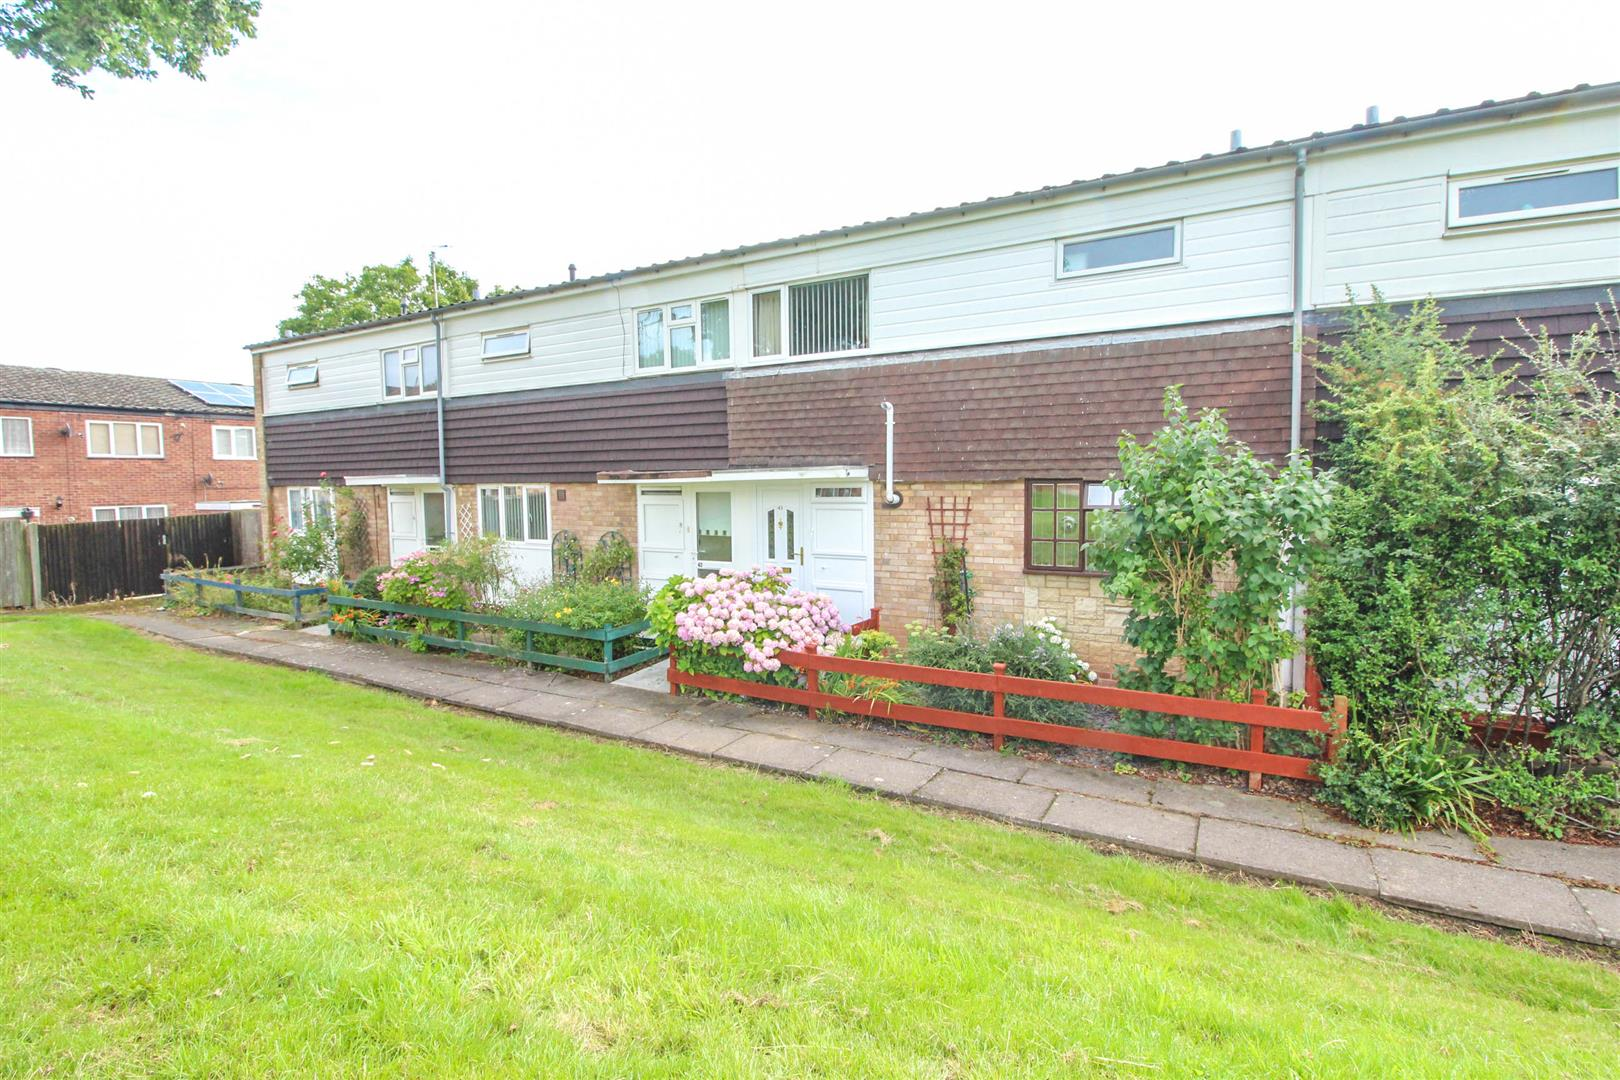 3 Bedrooms Property for sale in Bushley Close, Redditch